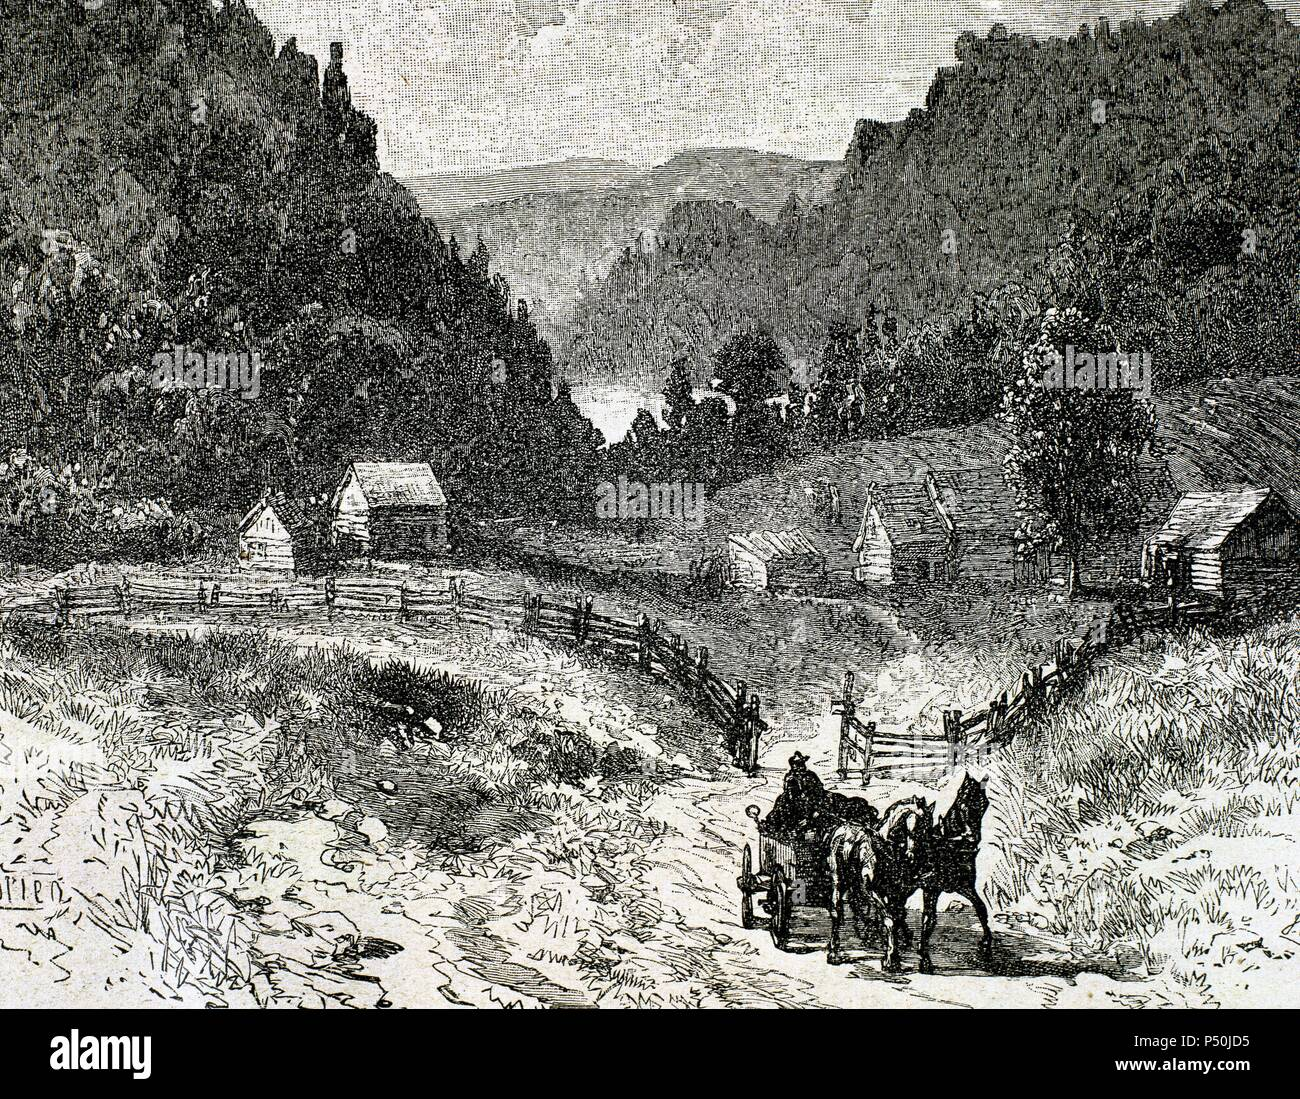 Canadian landscape in the eighteenth century. Nineteenth-century engraving. - Stock Image